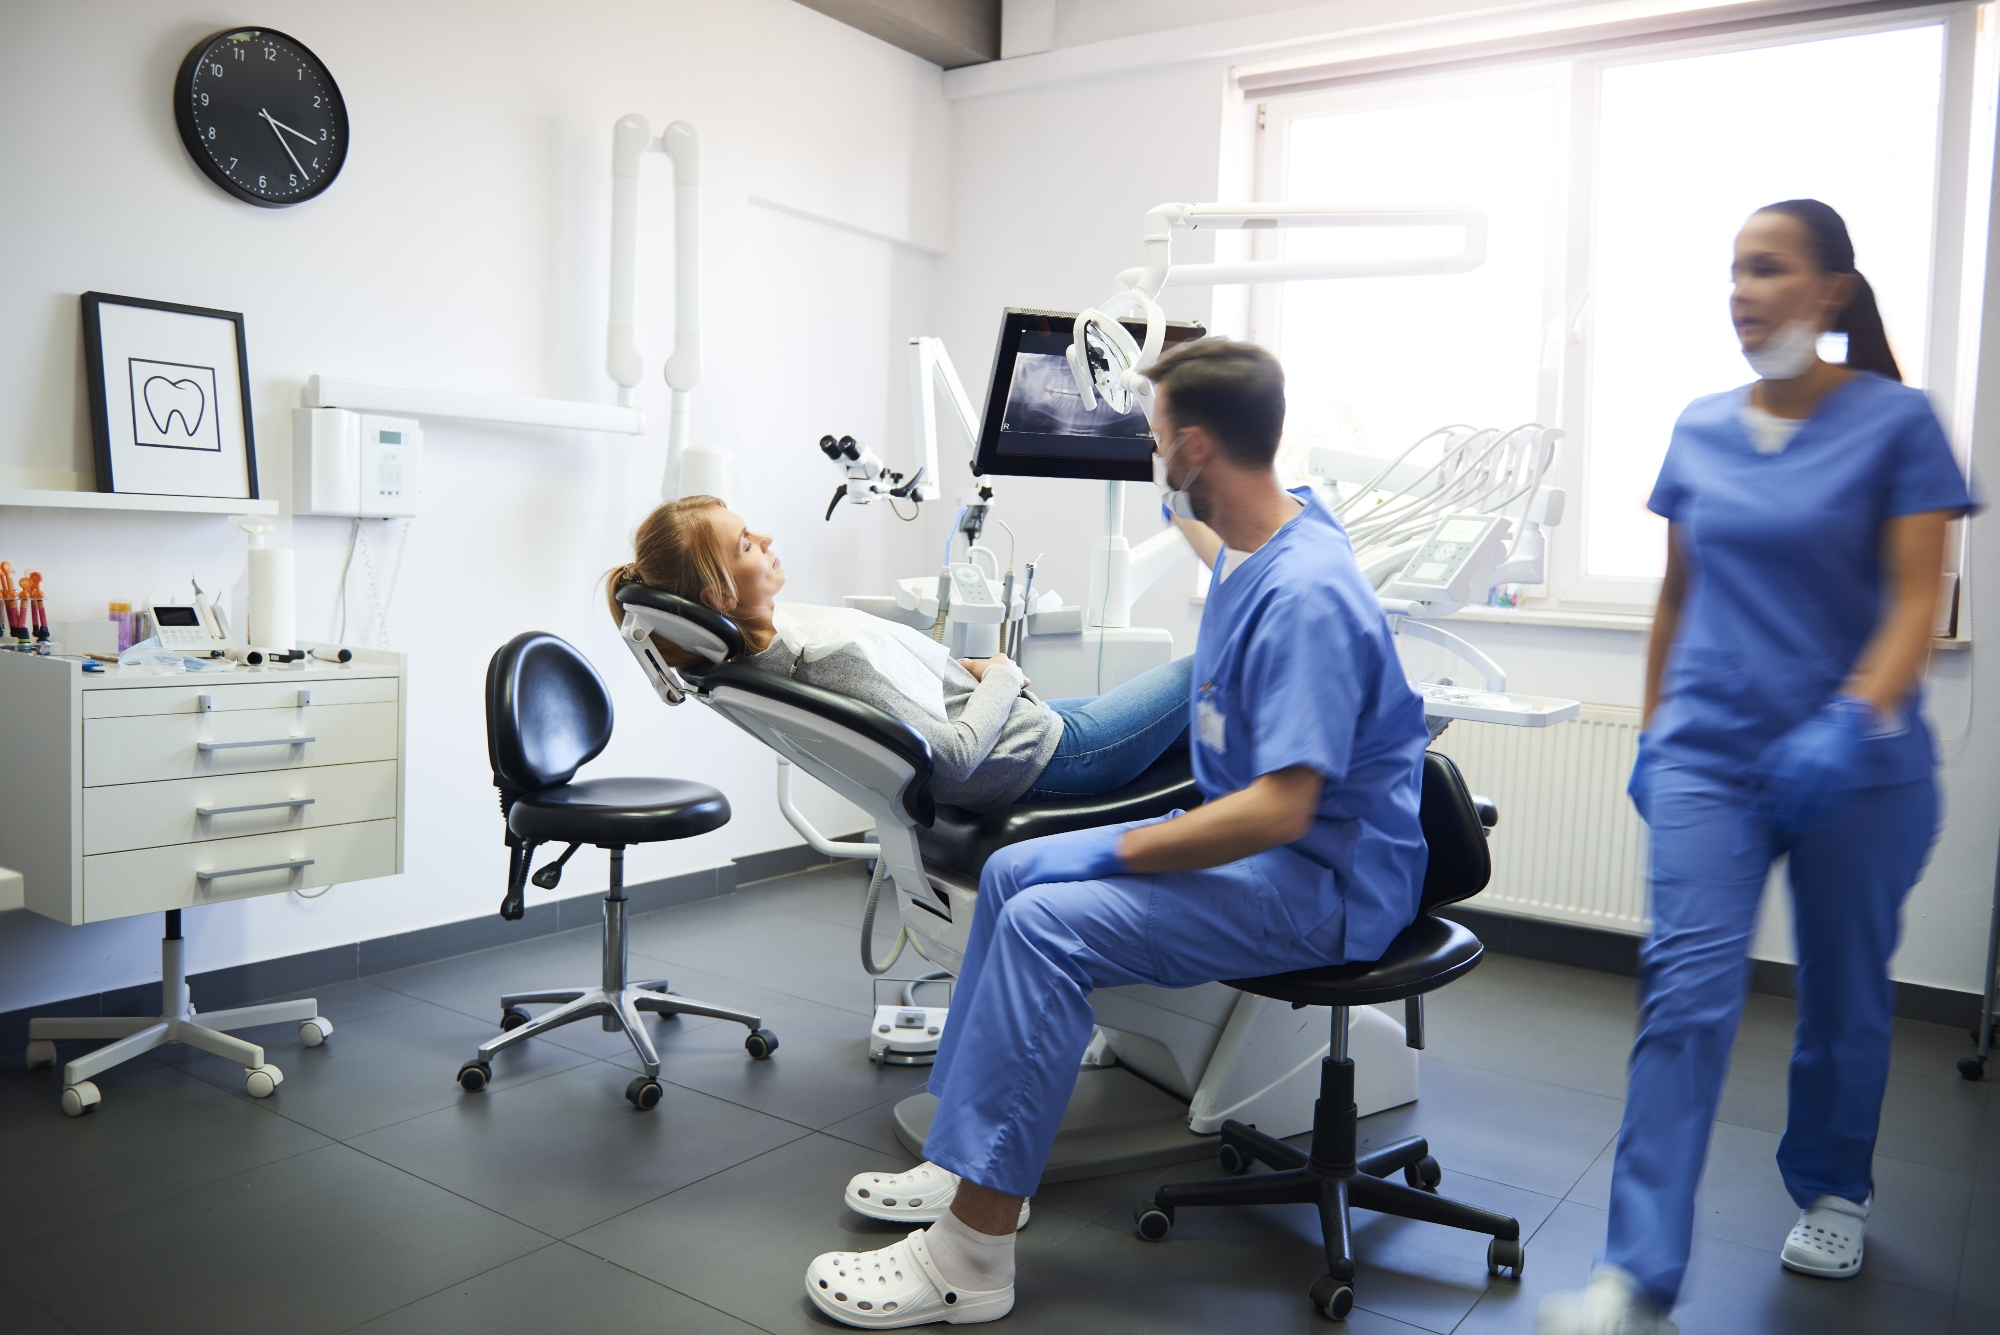 Tips for dentists dealing with stress